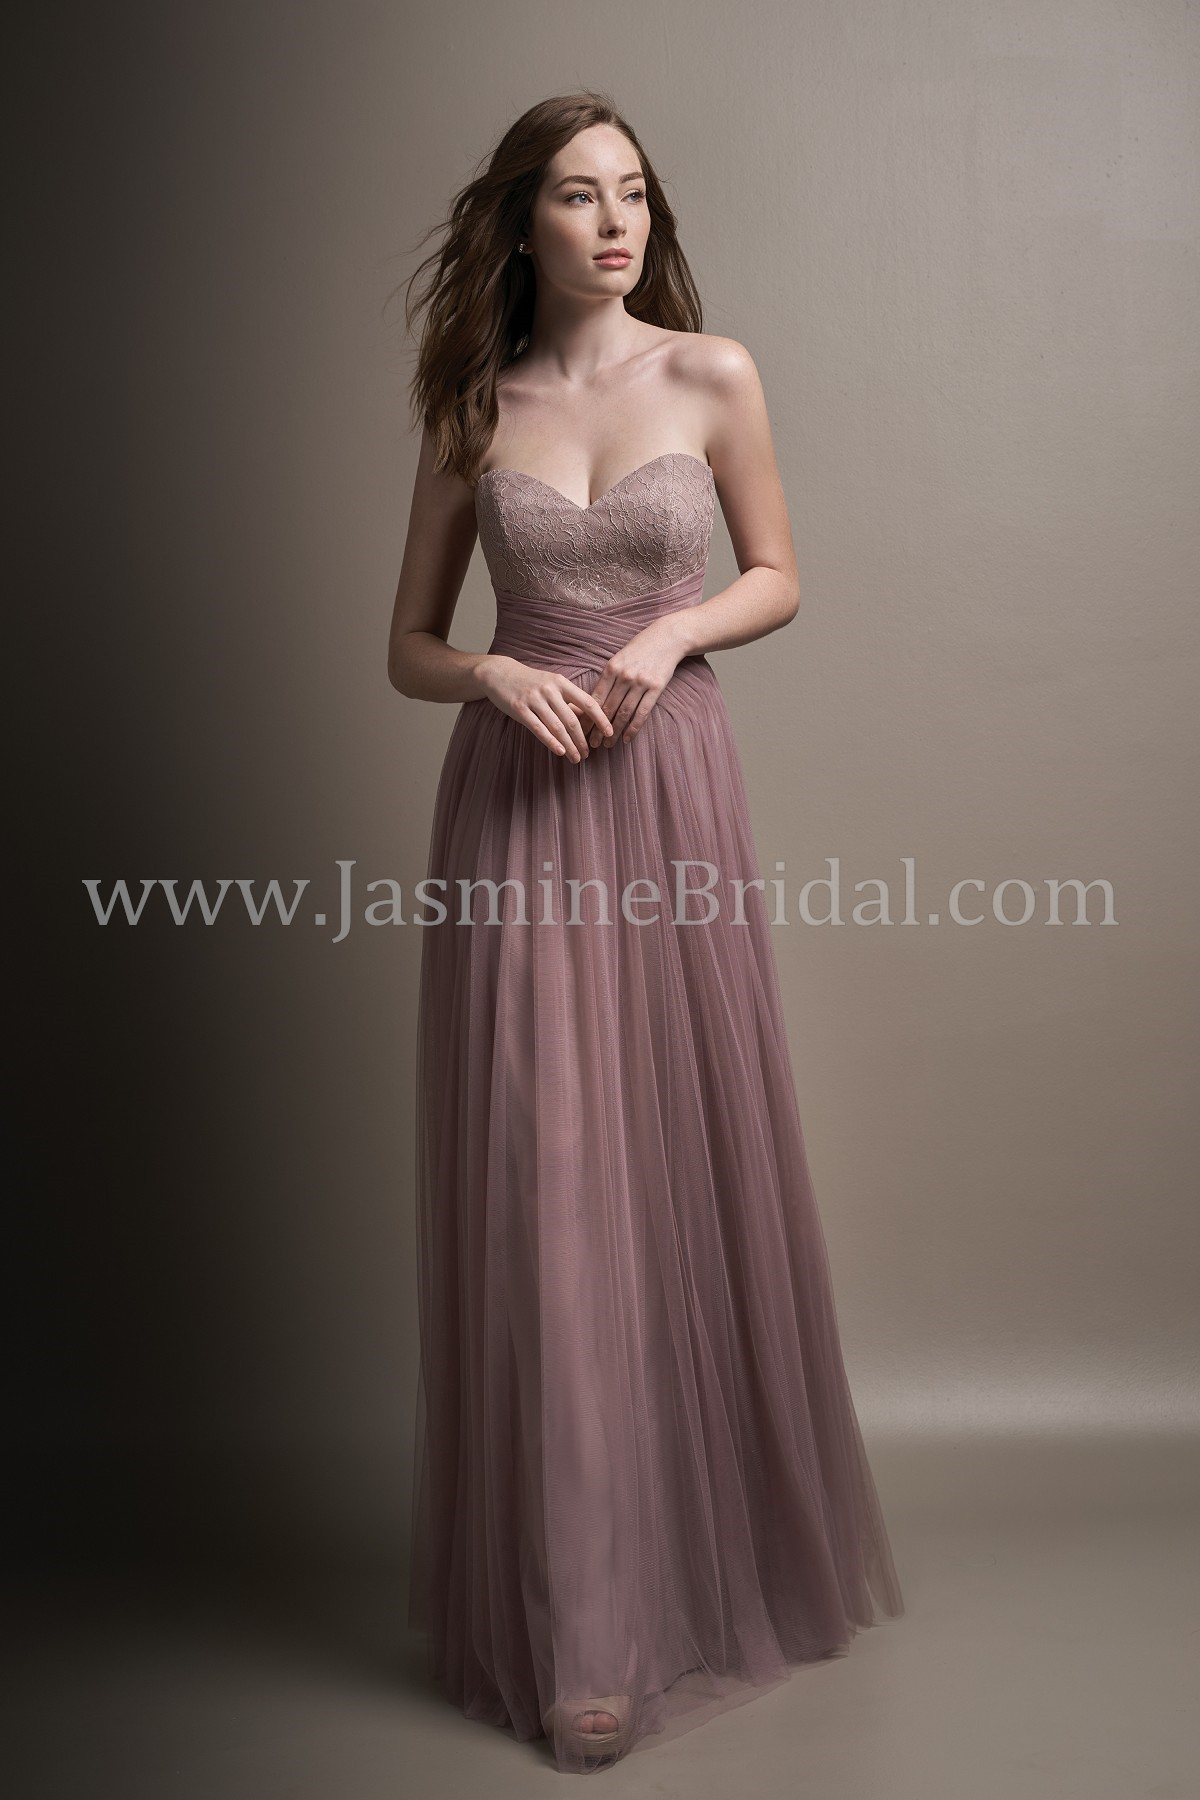 L194005 Long Sweetheart Strapless Lace & Soft Tulle Bridesmaid Dress